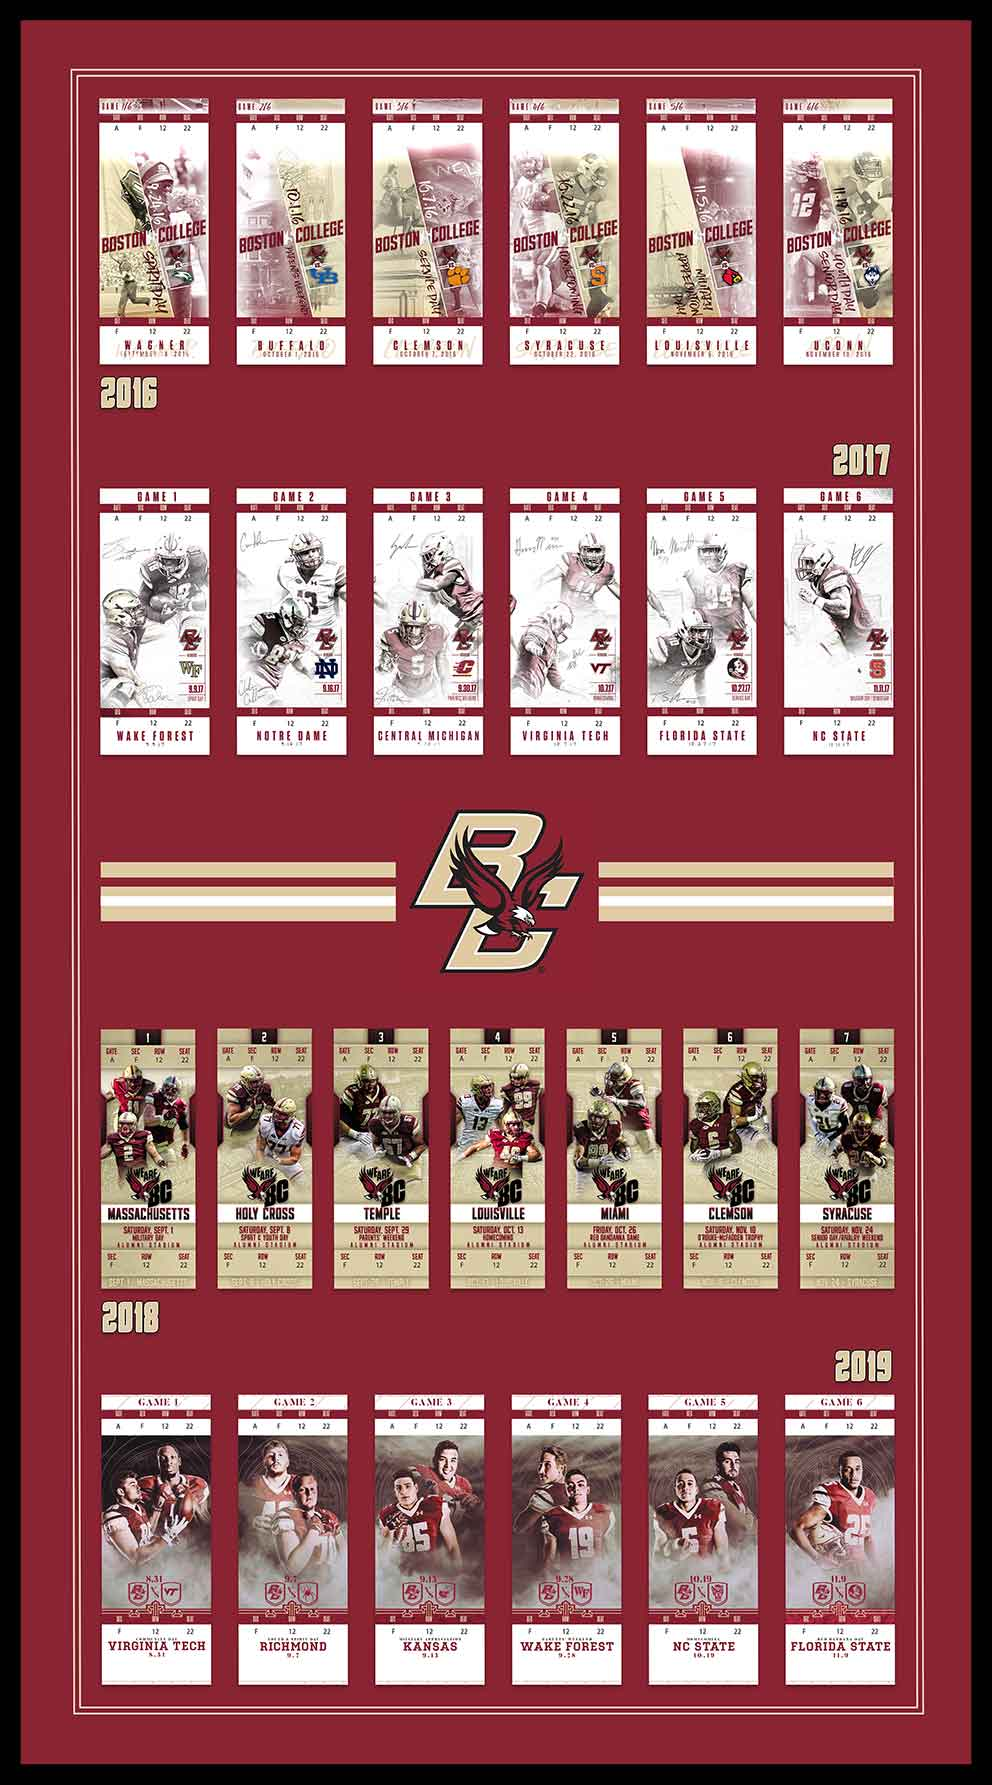 4 Years of BC Football - 2016 - 2019